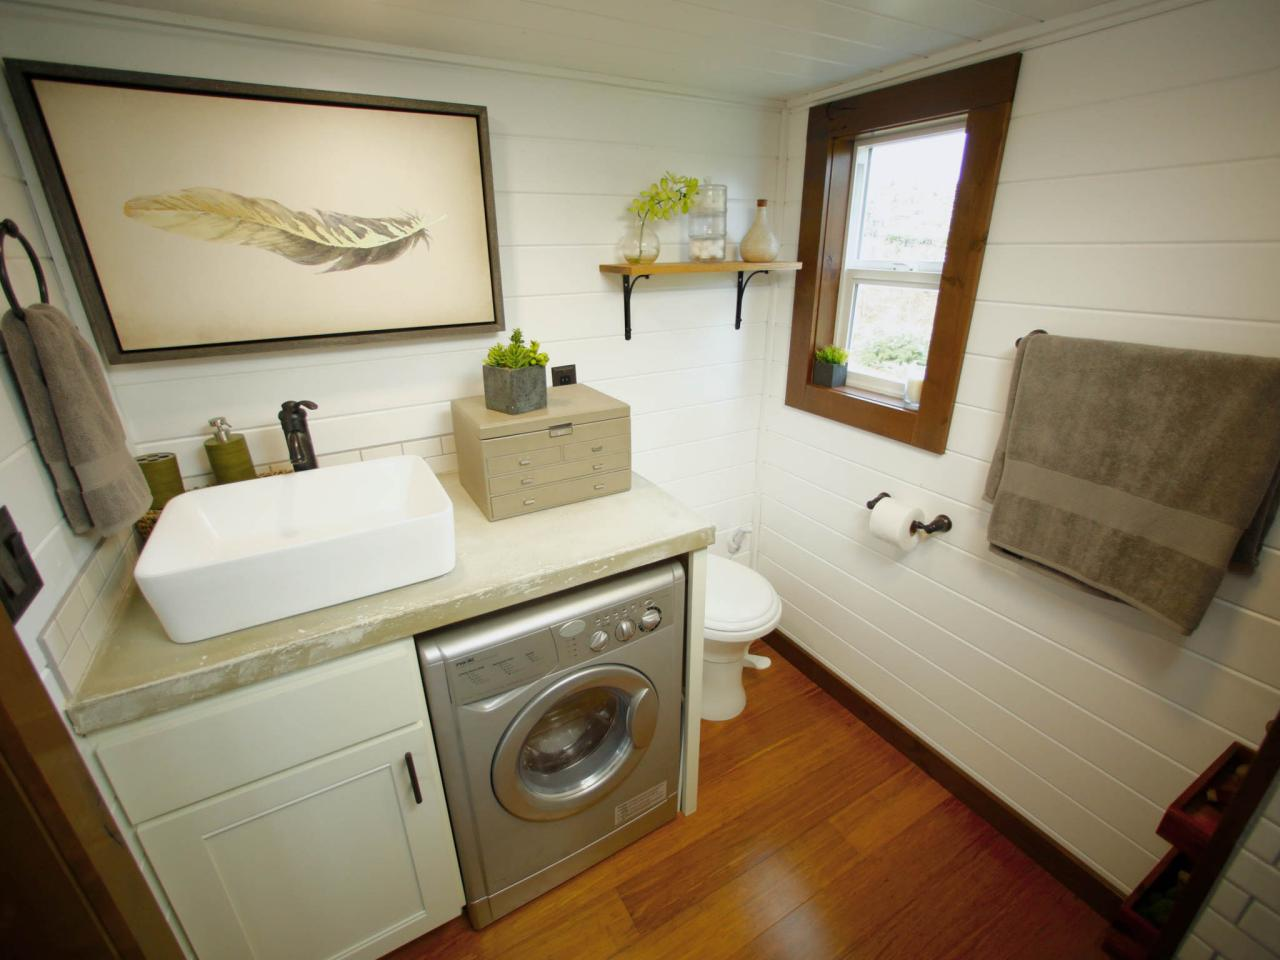 8 tiny house bathrooms packed with style hgtv 39 s for Small bathroom designs with washing machine